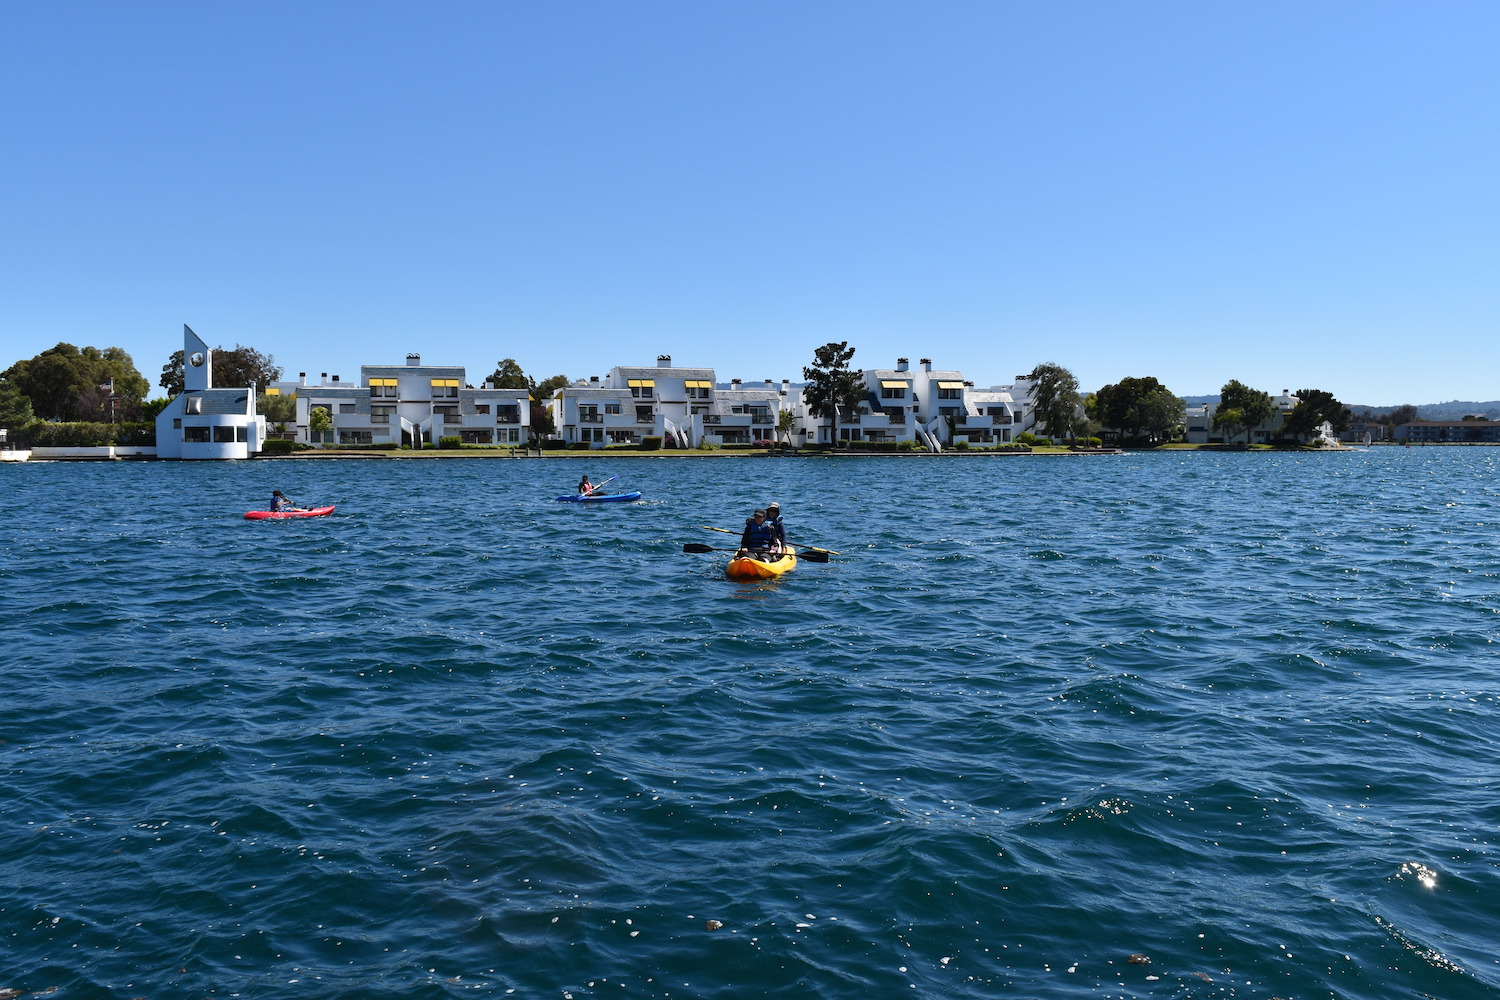 People canoe in the lagoon off of Leo J. Ryan Memorial Park | © Rebecca Ezrin